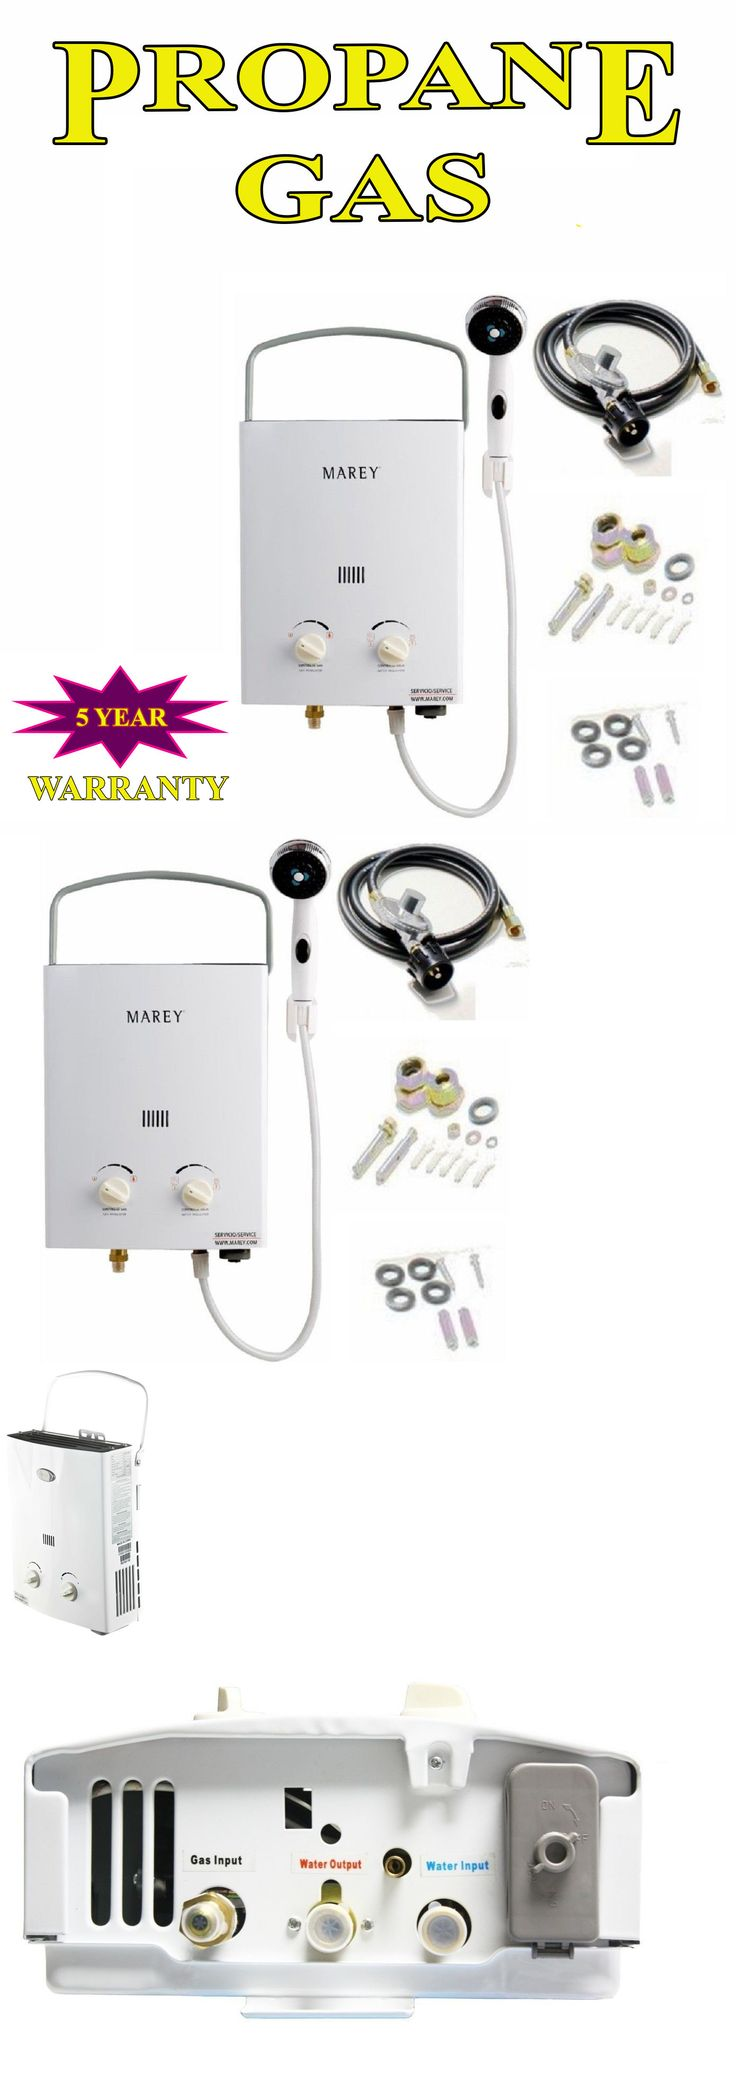 Other Camping Hygiene Accs 181400: Marey Mini Portable Camping Rv Tankless Water Heater Propane Gas 2 Gpm -> BUY IT NOW ONLY: $119.95 on eBay!